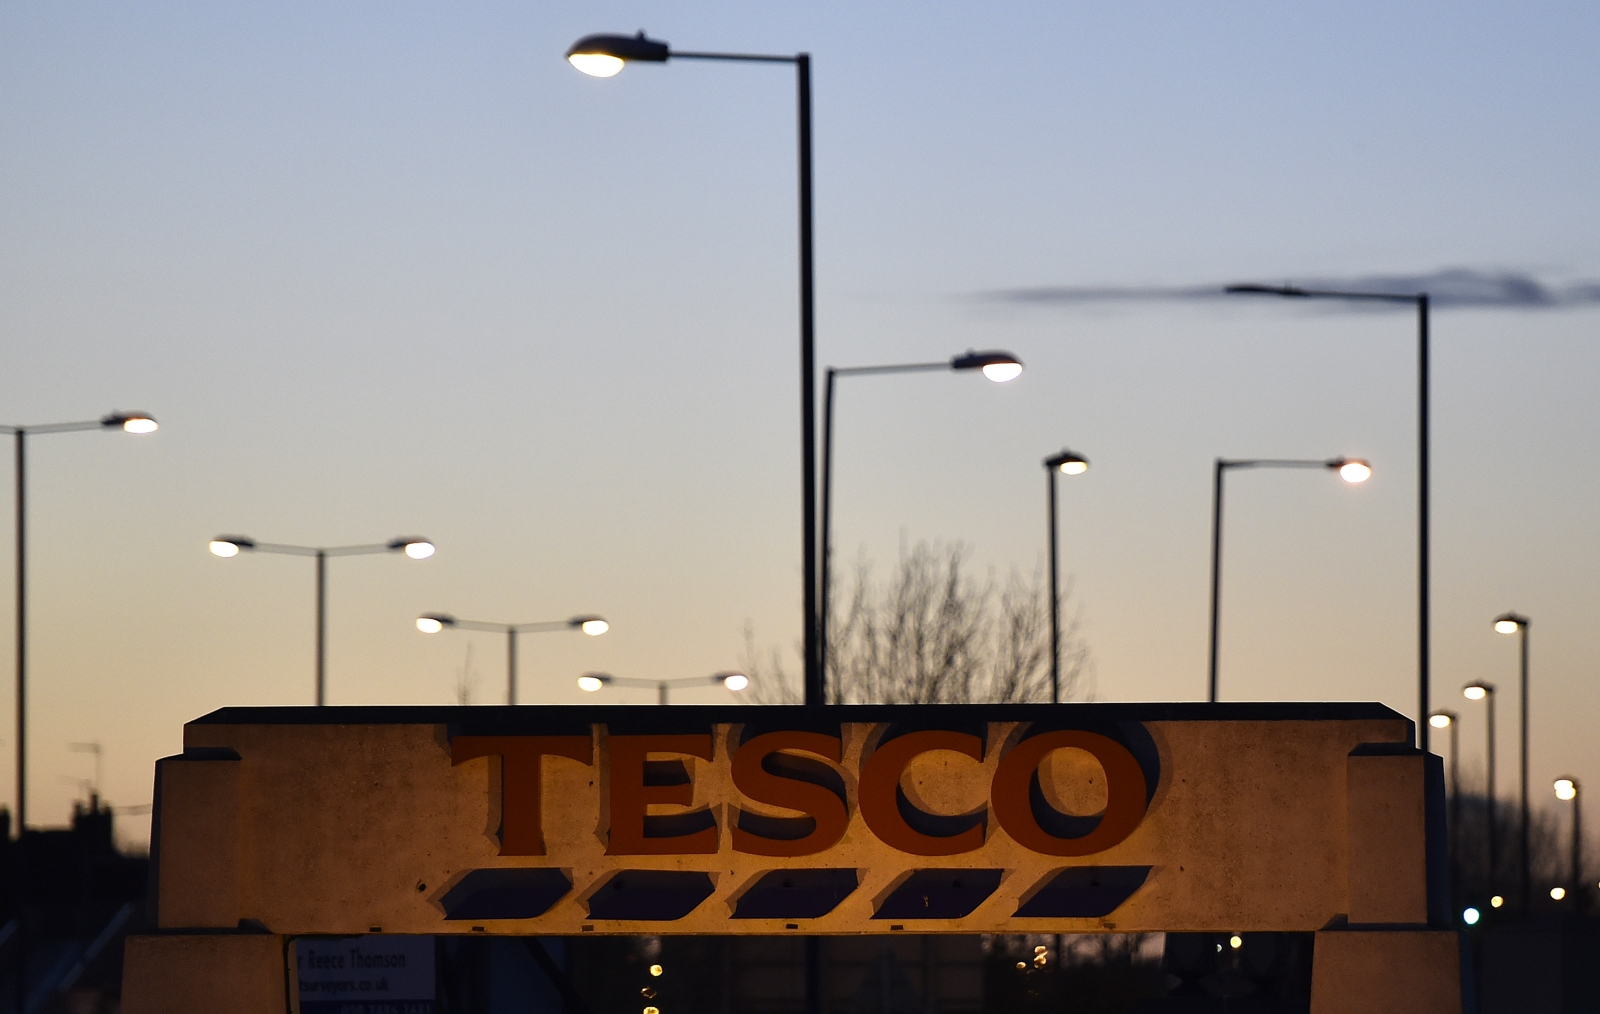 Market round-up: Tesco losses drag the FTSE 100 down